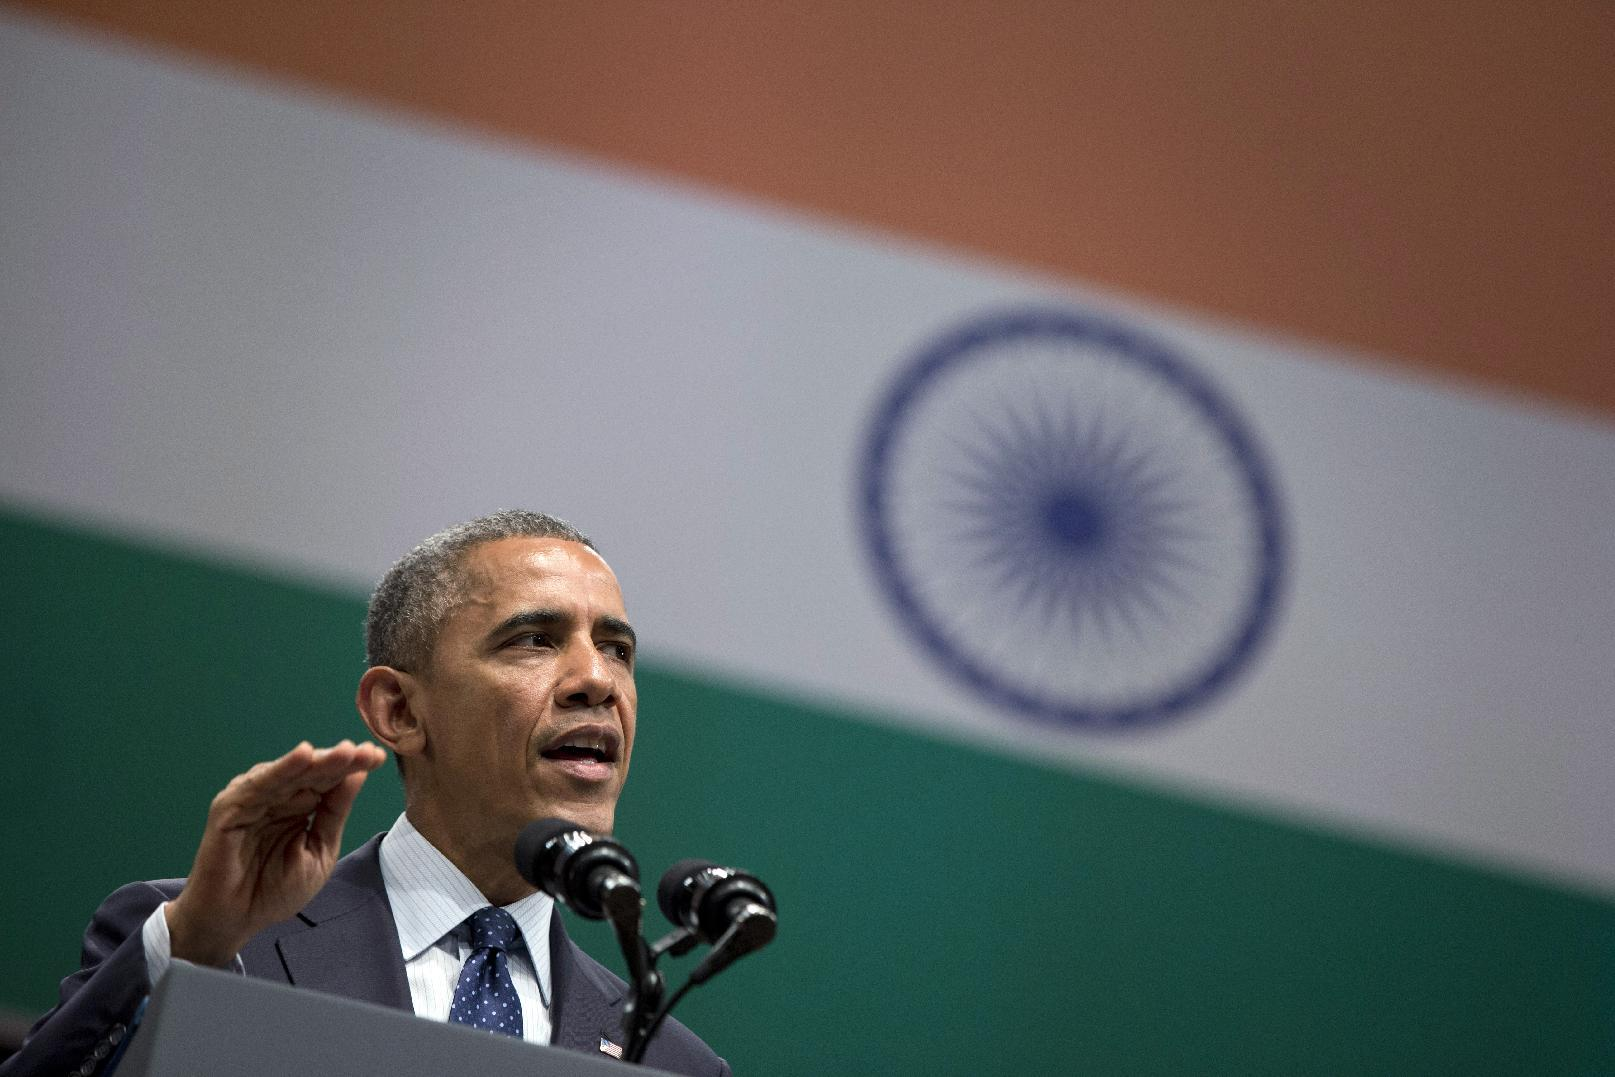 Obama promotes religious and gender equity in India speech